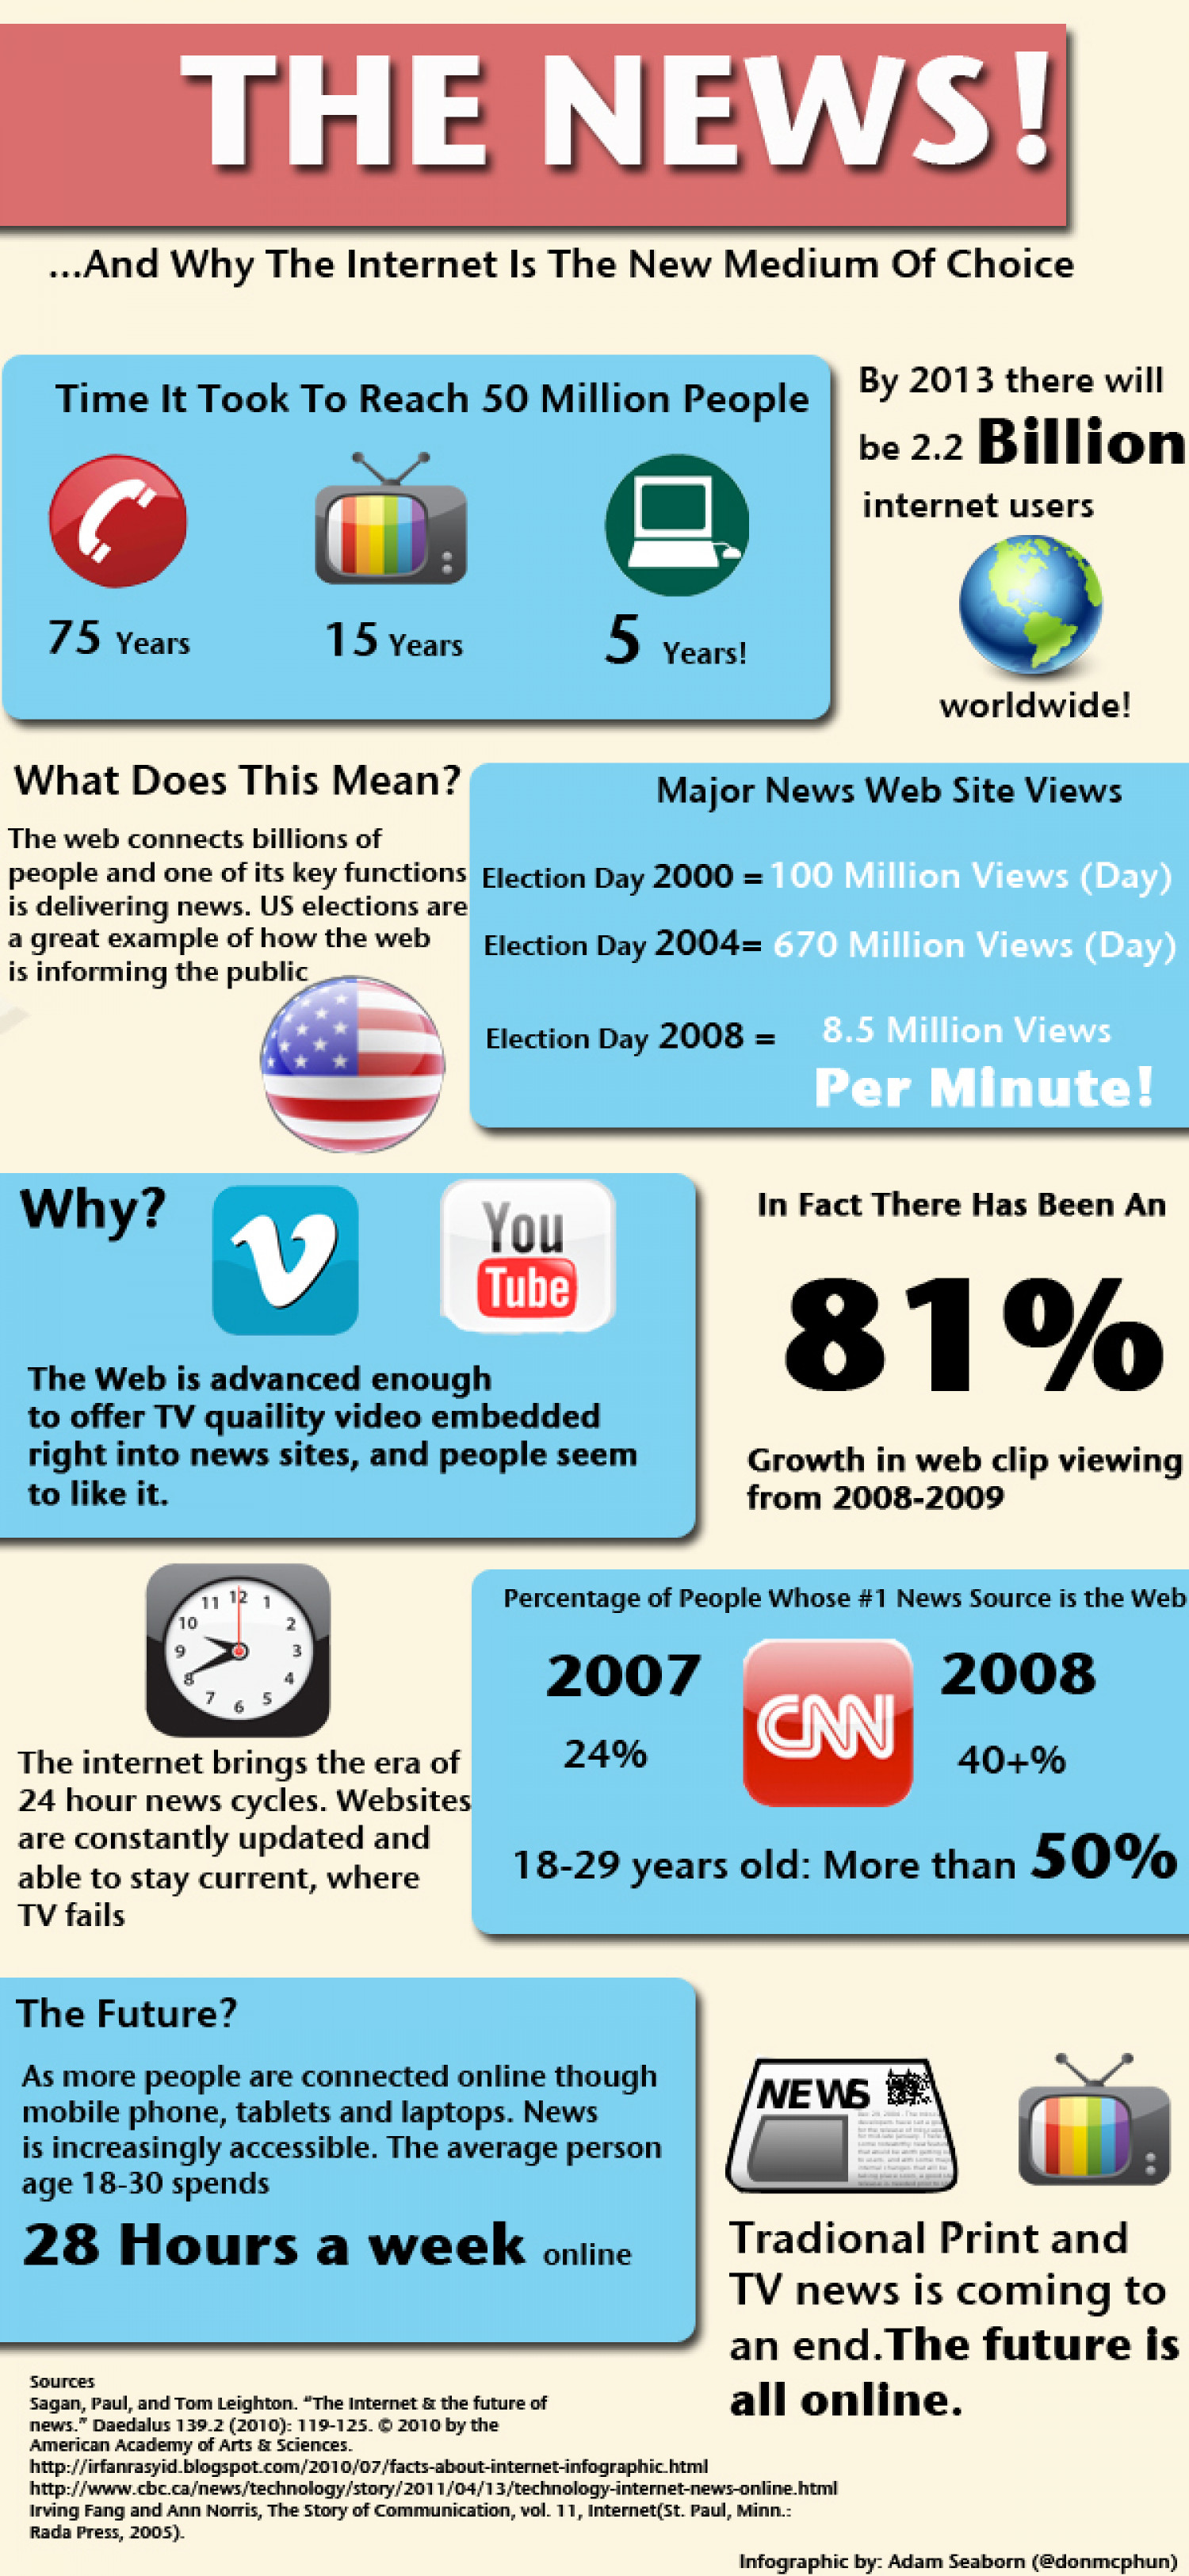 The News And Why the Internet is the New Medium of Choice Infographic